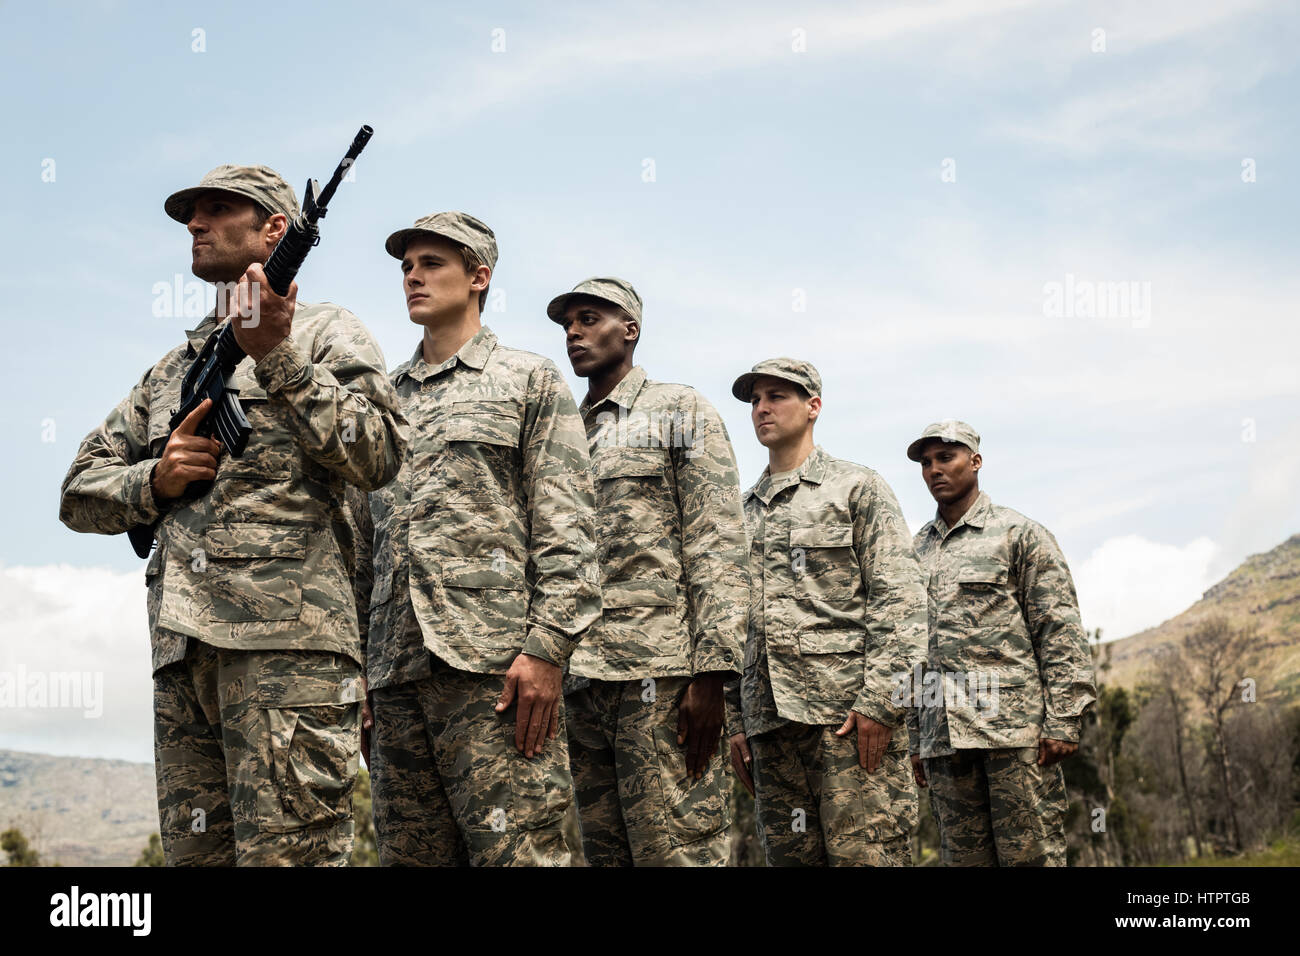 Group of military soldiers standing in line at boot camp - Stock Image